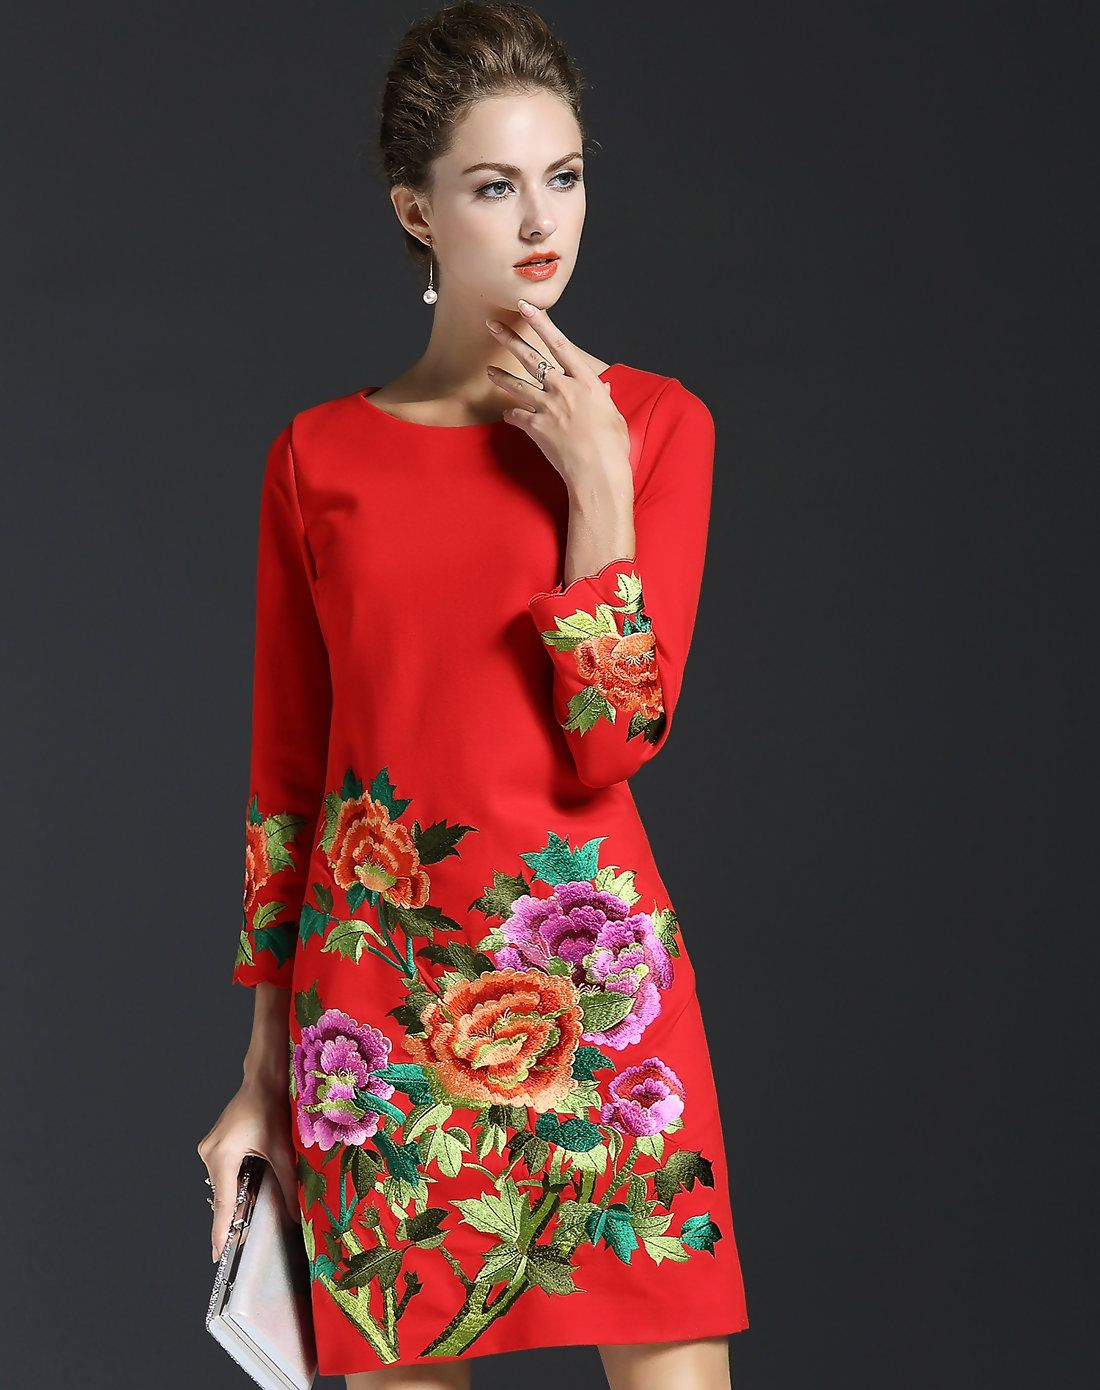 VIPme Red Long Sleeve Floral Embroidery H Line Short Dress ❤ Get ...